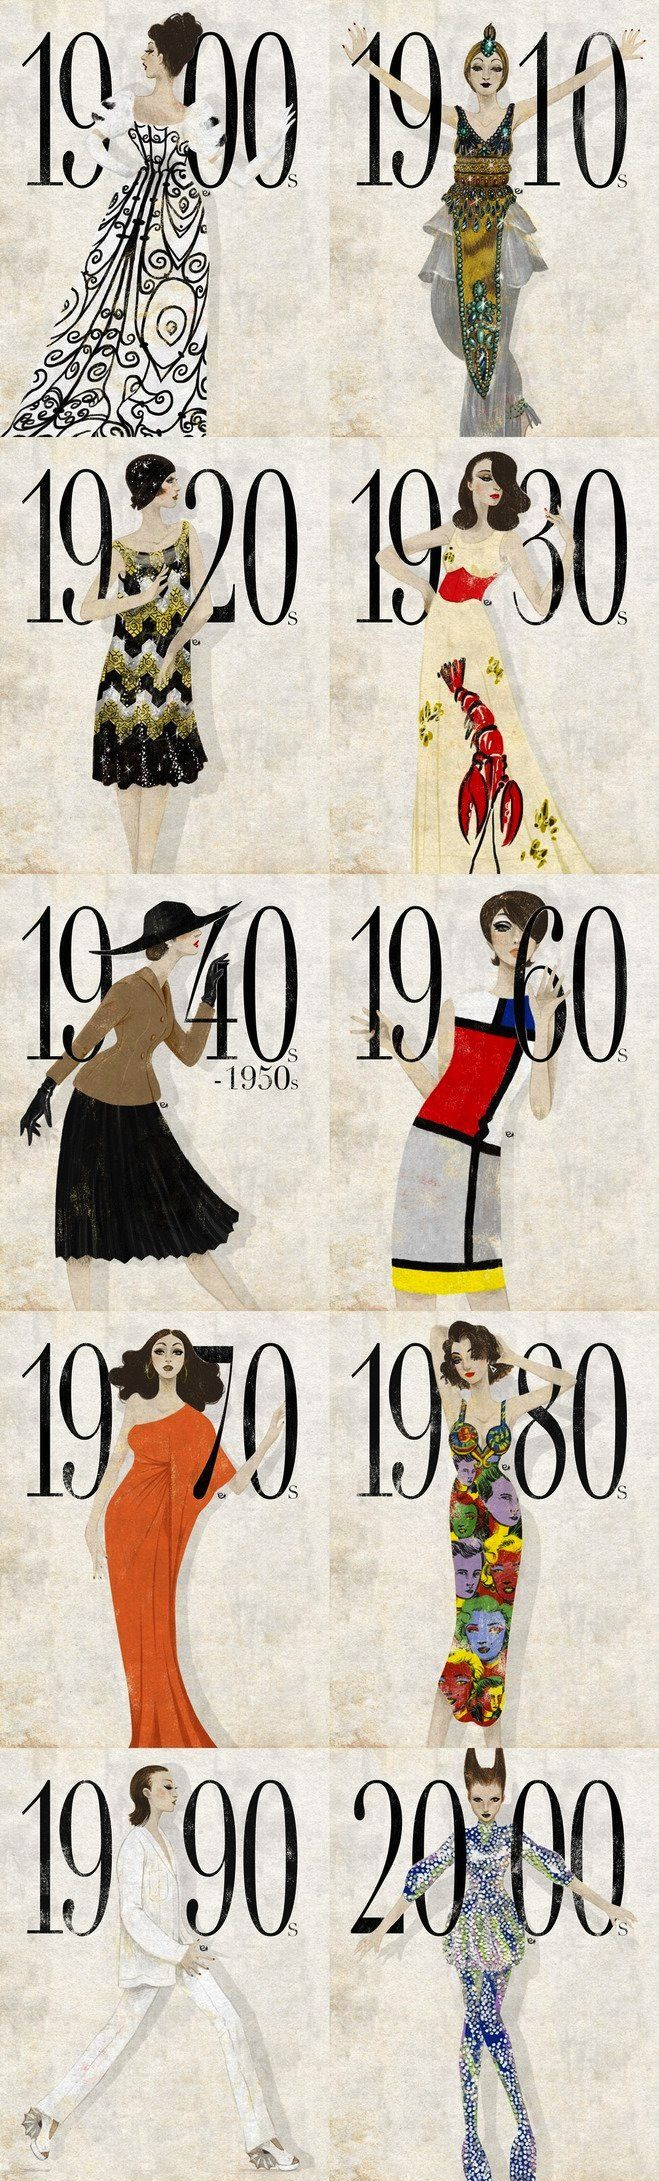 fashion history- though I think that the 40/50 was incorrectly matched - but which fashion decade are you ??: